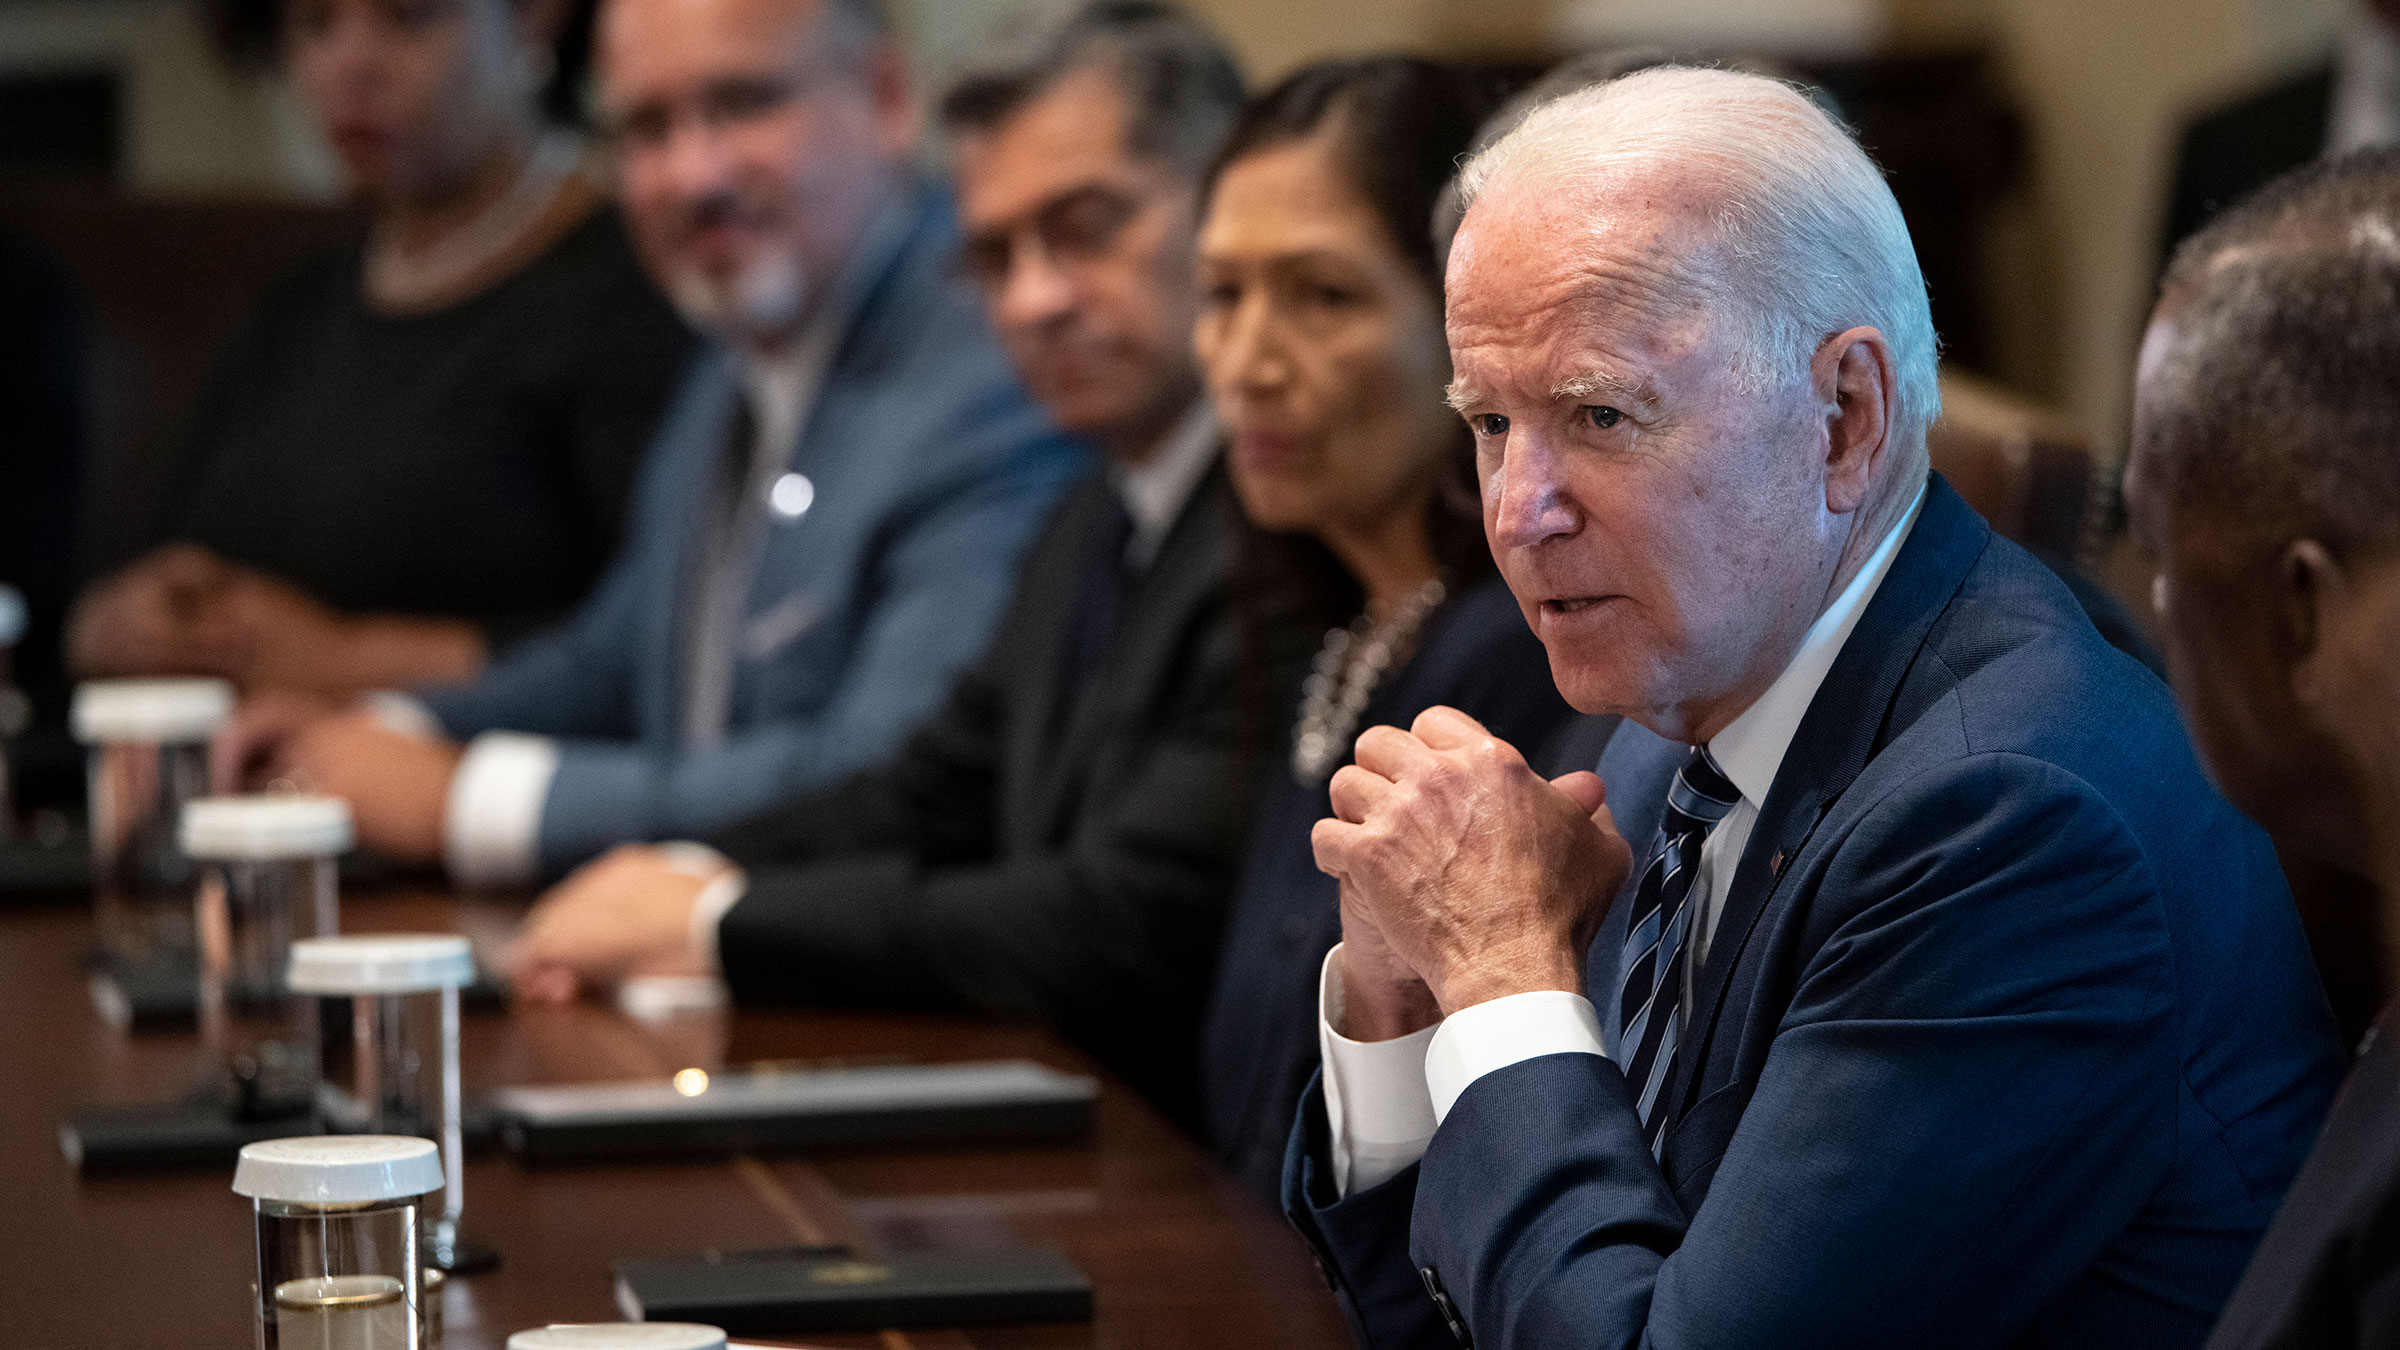 President Joe Biden speaks during a Cabinet meeting at the White House on July 20, in Washington, DC.